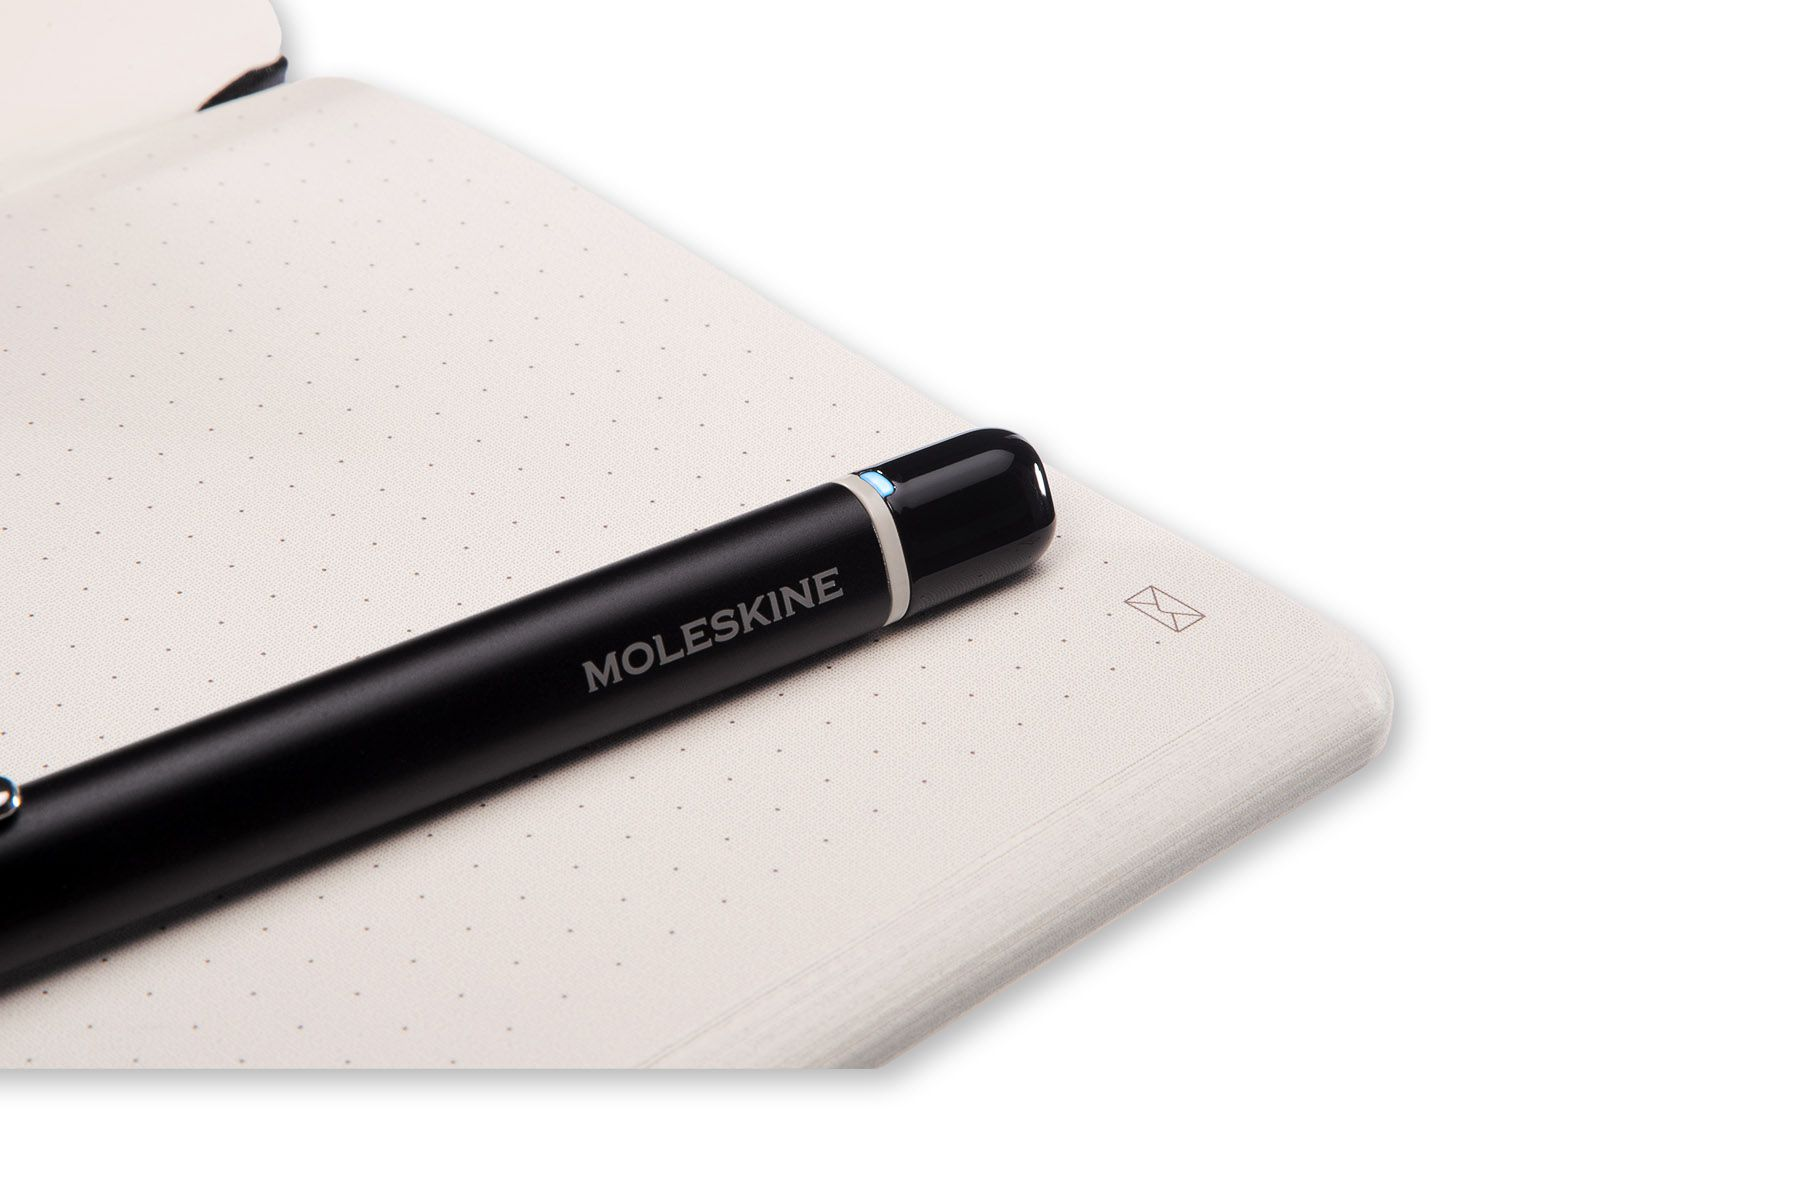 Conjunto Moleskine Smart Writing Set